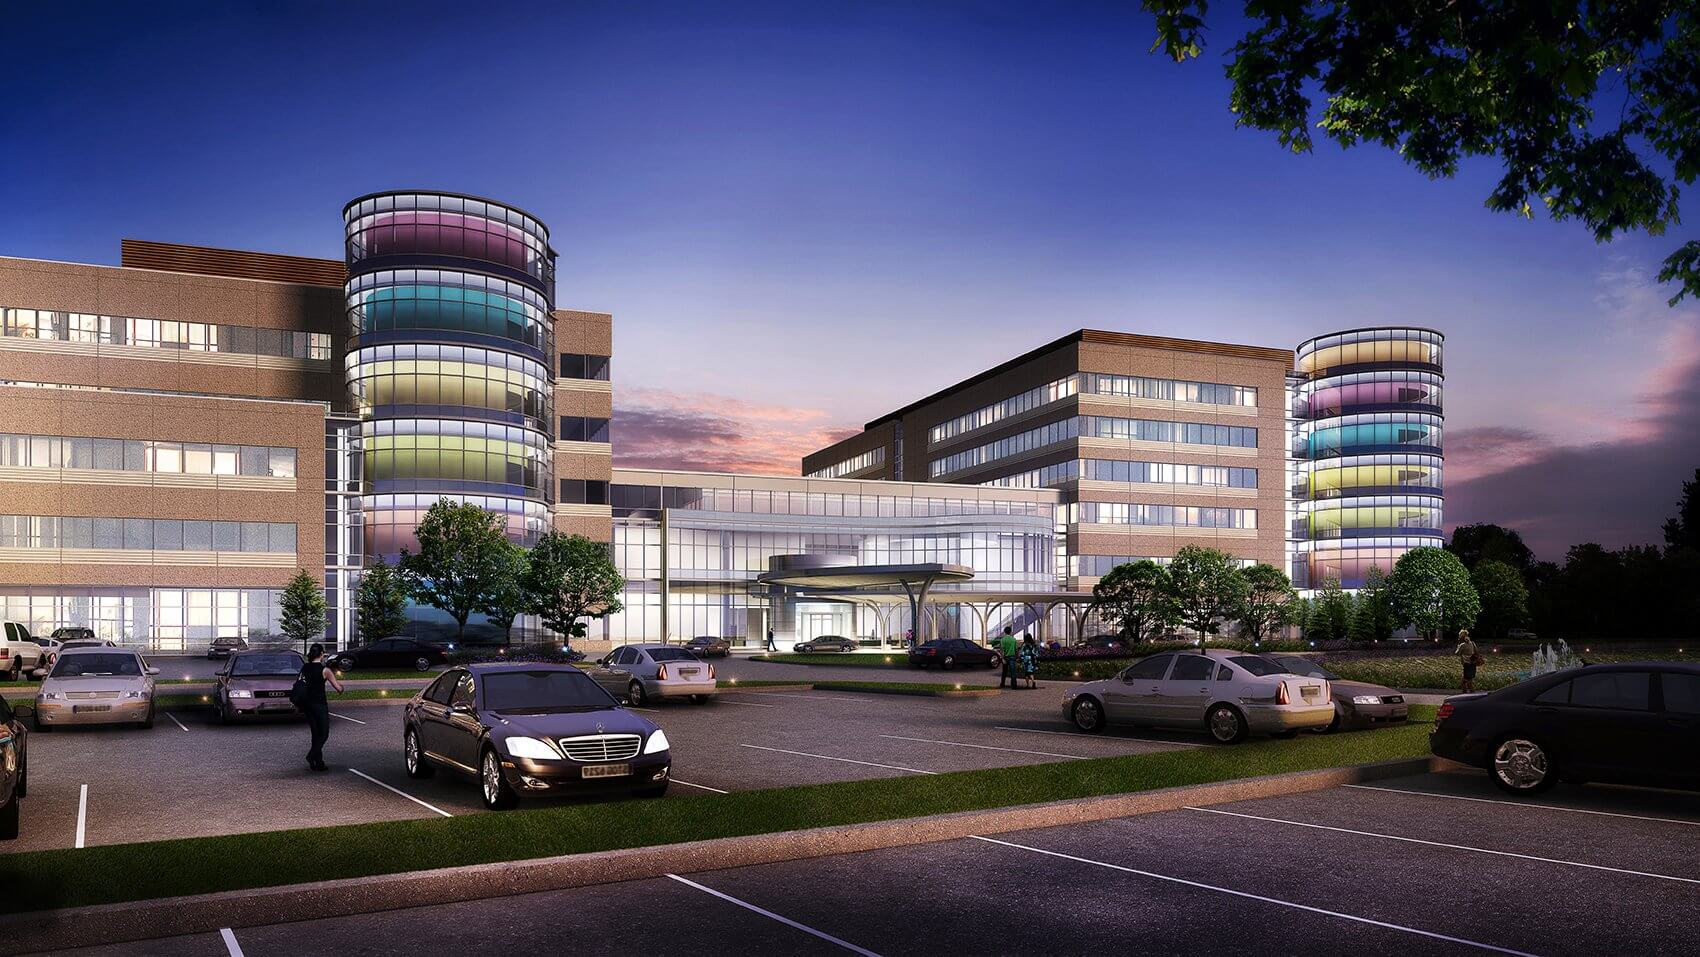 Illustration of Texas Children's Hospital The Woodlands, to open in 2017. (Credit: Texas Children's Hospital)